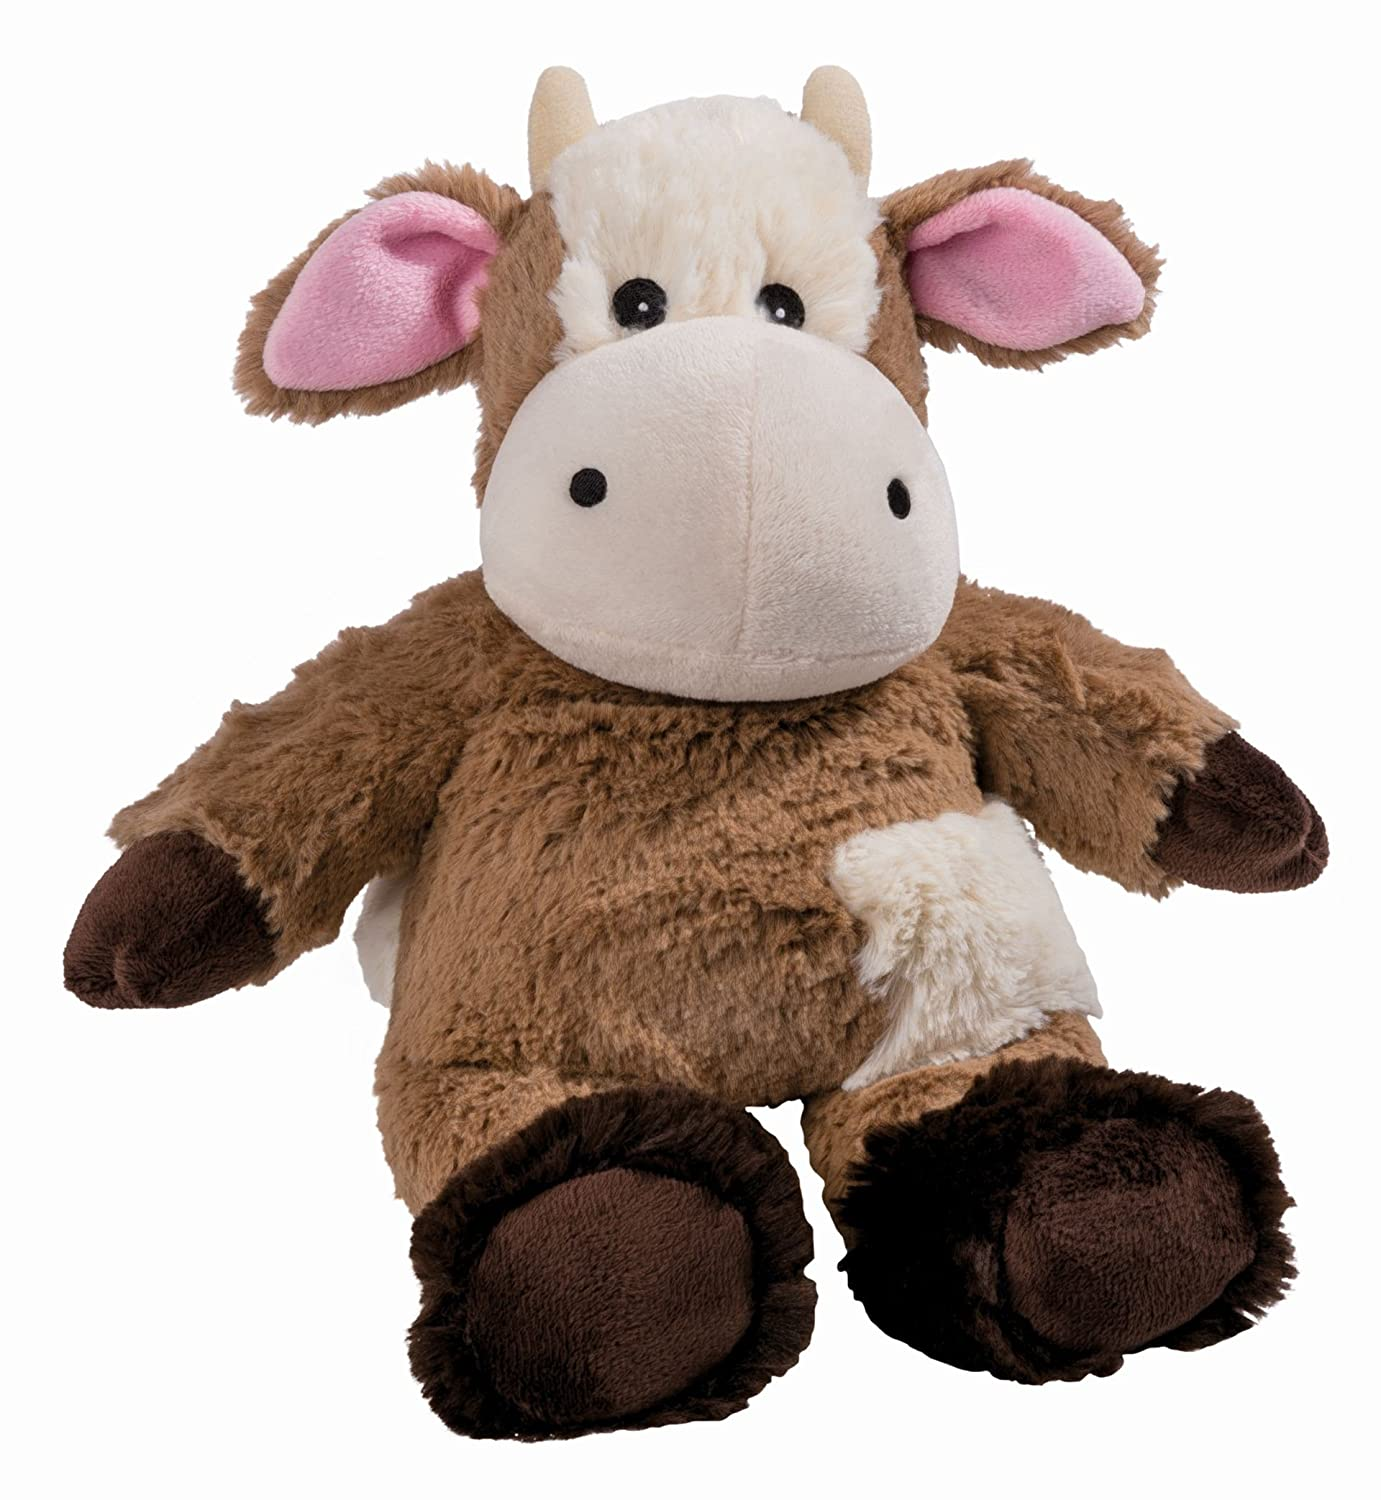 Warmies Beddy Bears Cocoa Cow with Lavender Scent Brown BabyCenter 01091